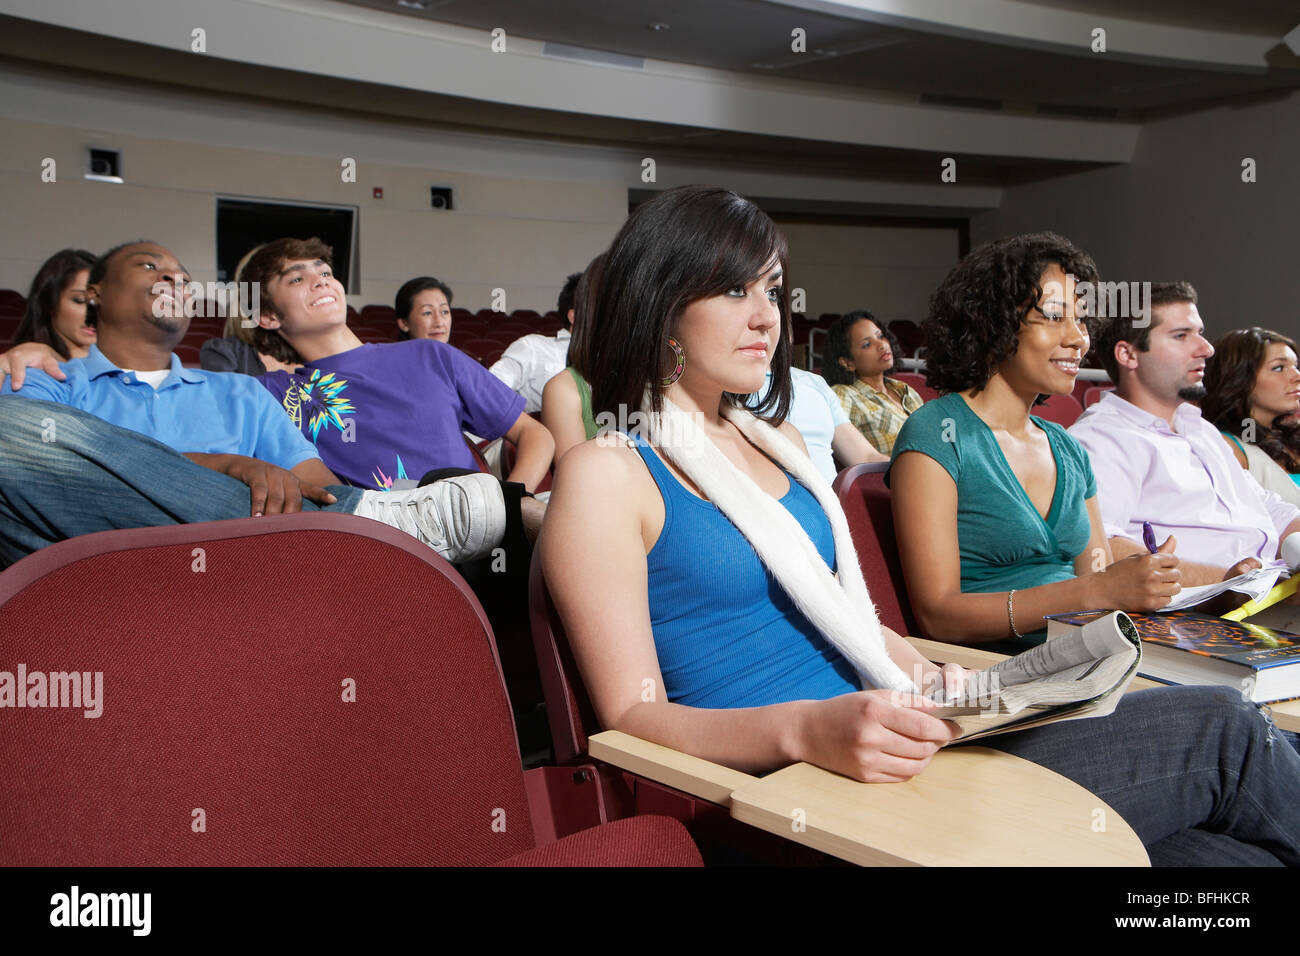 Students sitting in lecture theatre during lesson - Stock Image